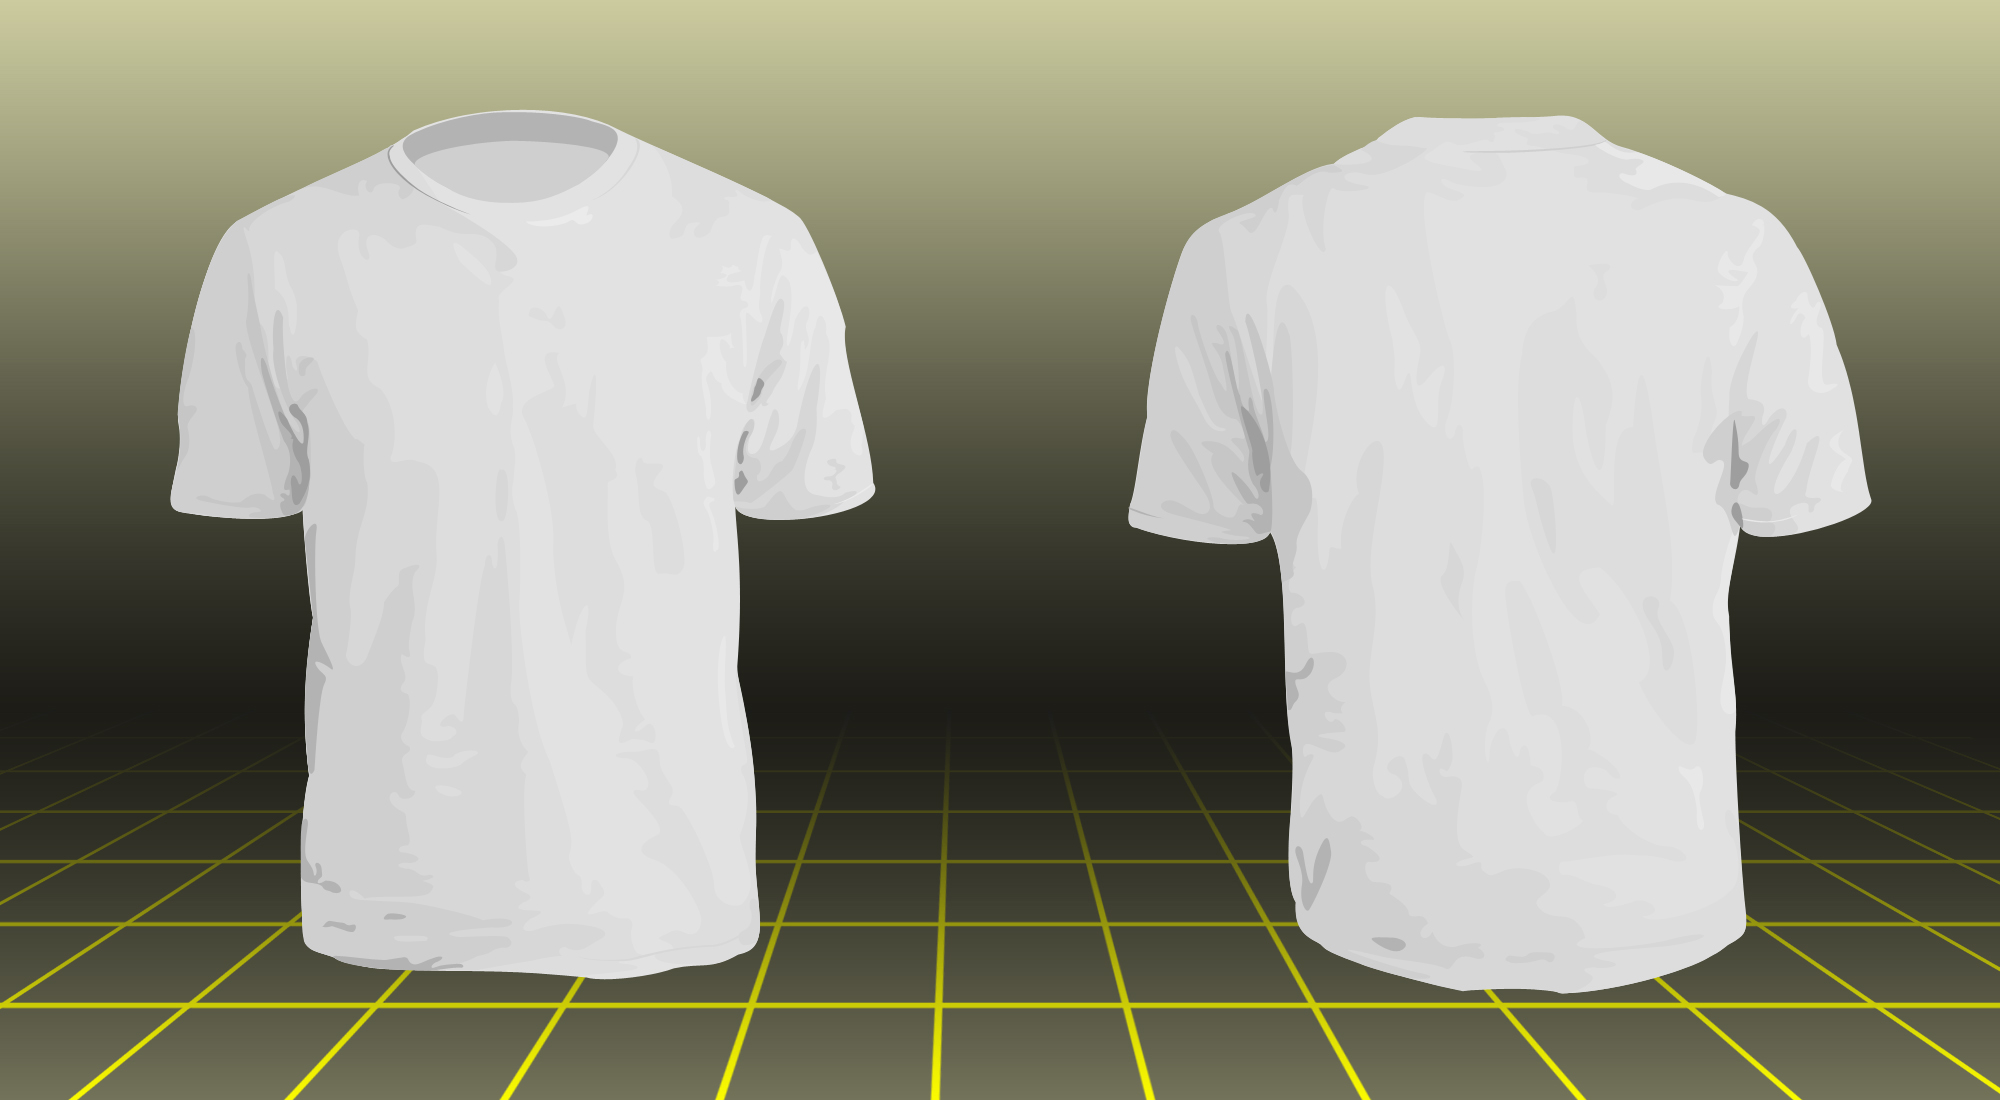 18 T-Shirt Model Template Images - Blank T-Shirt Design Template, T ...